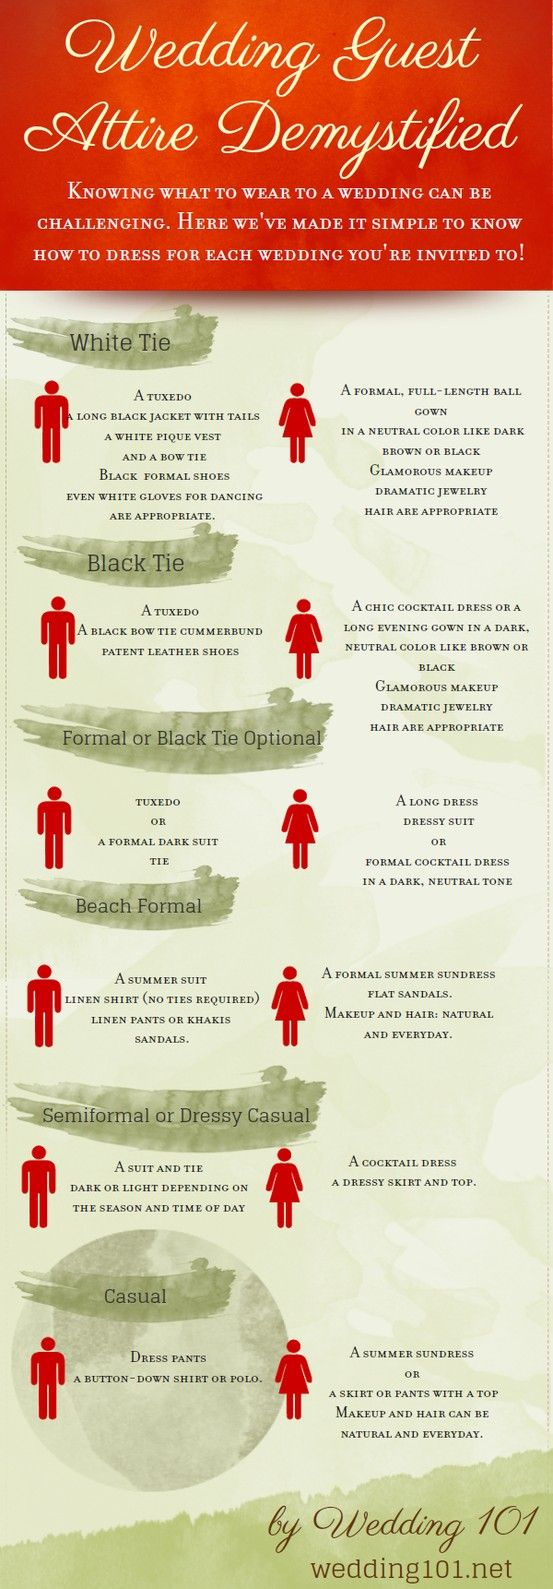 Wedding High: Wedding Guest Dress Codes Explained and woman do not wear a white or cream outfit!!! And all black is really not OK.